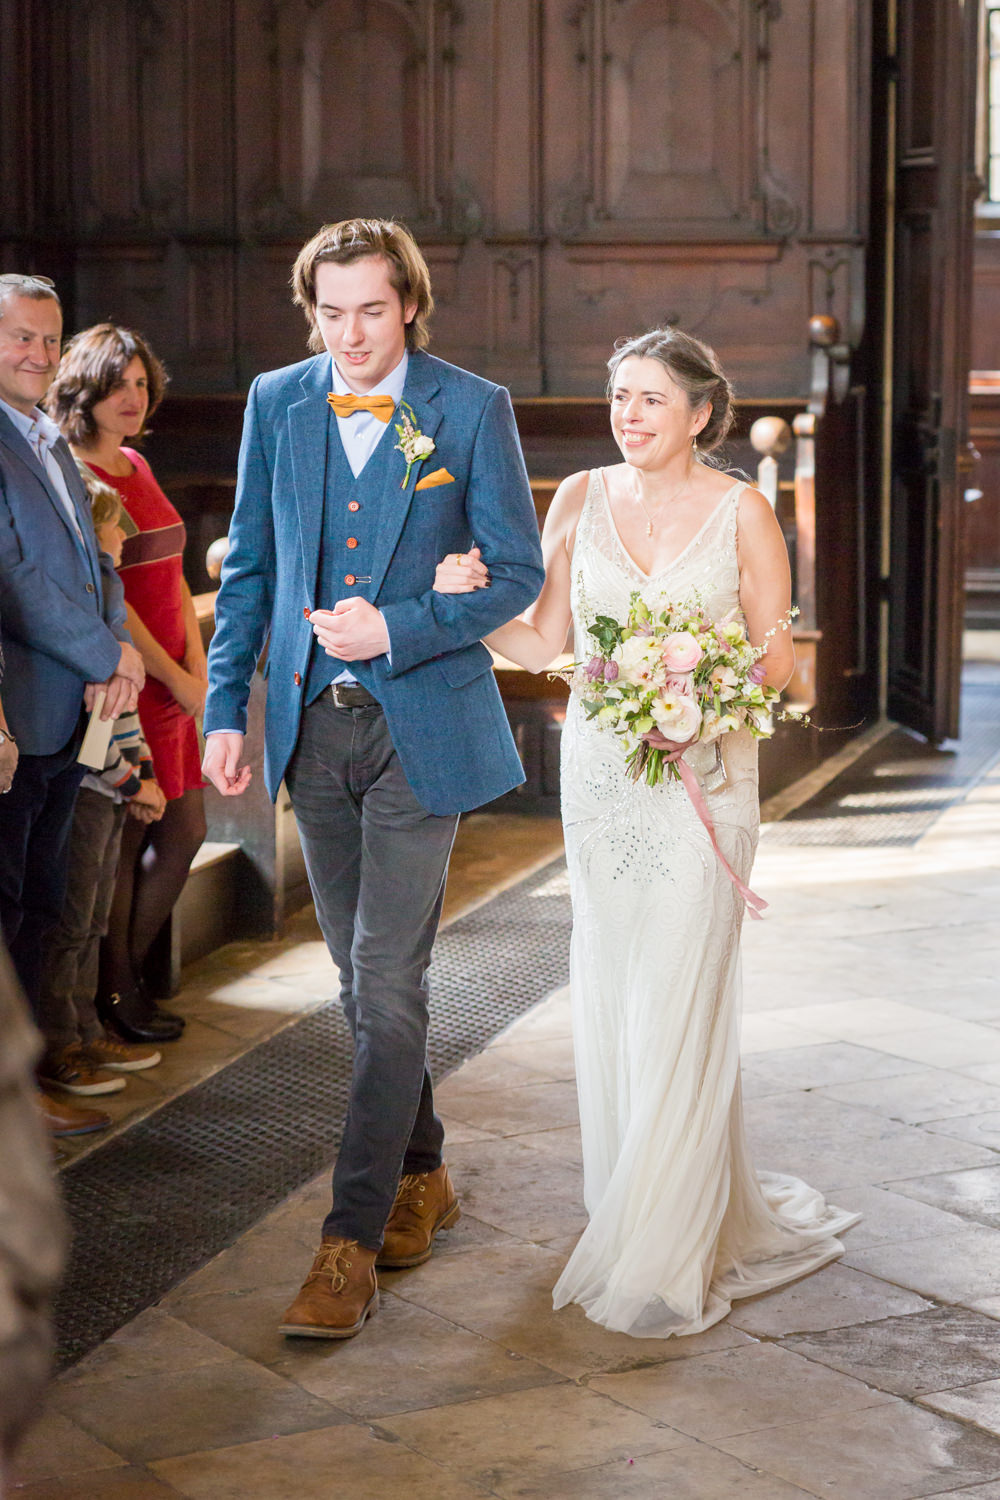 Bride Bridal Beaded Fitted Phase Eight Dress Tweed Jacket Wild Loose Handtied Bouquet Ribbon Bodleian Library Wedding Anita Nicholson Photography